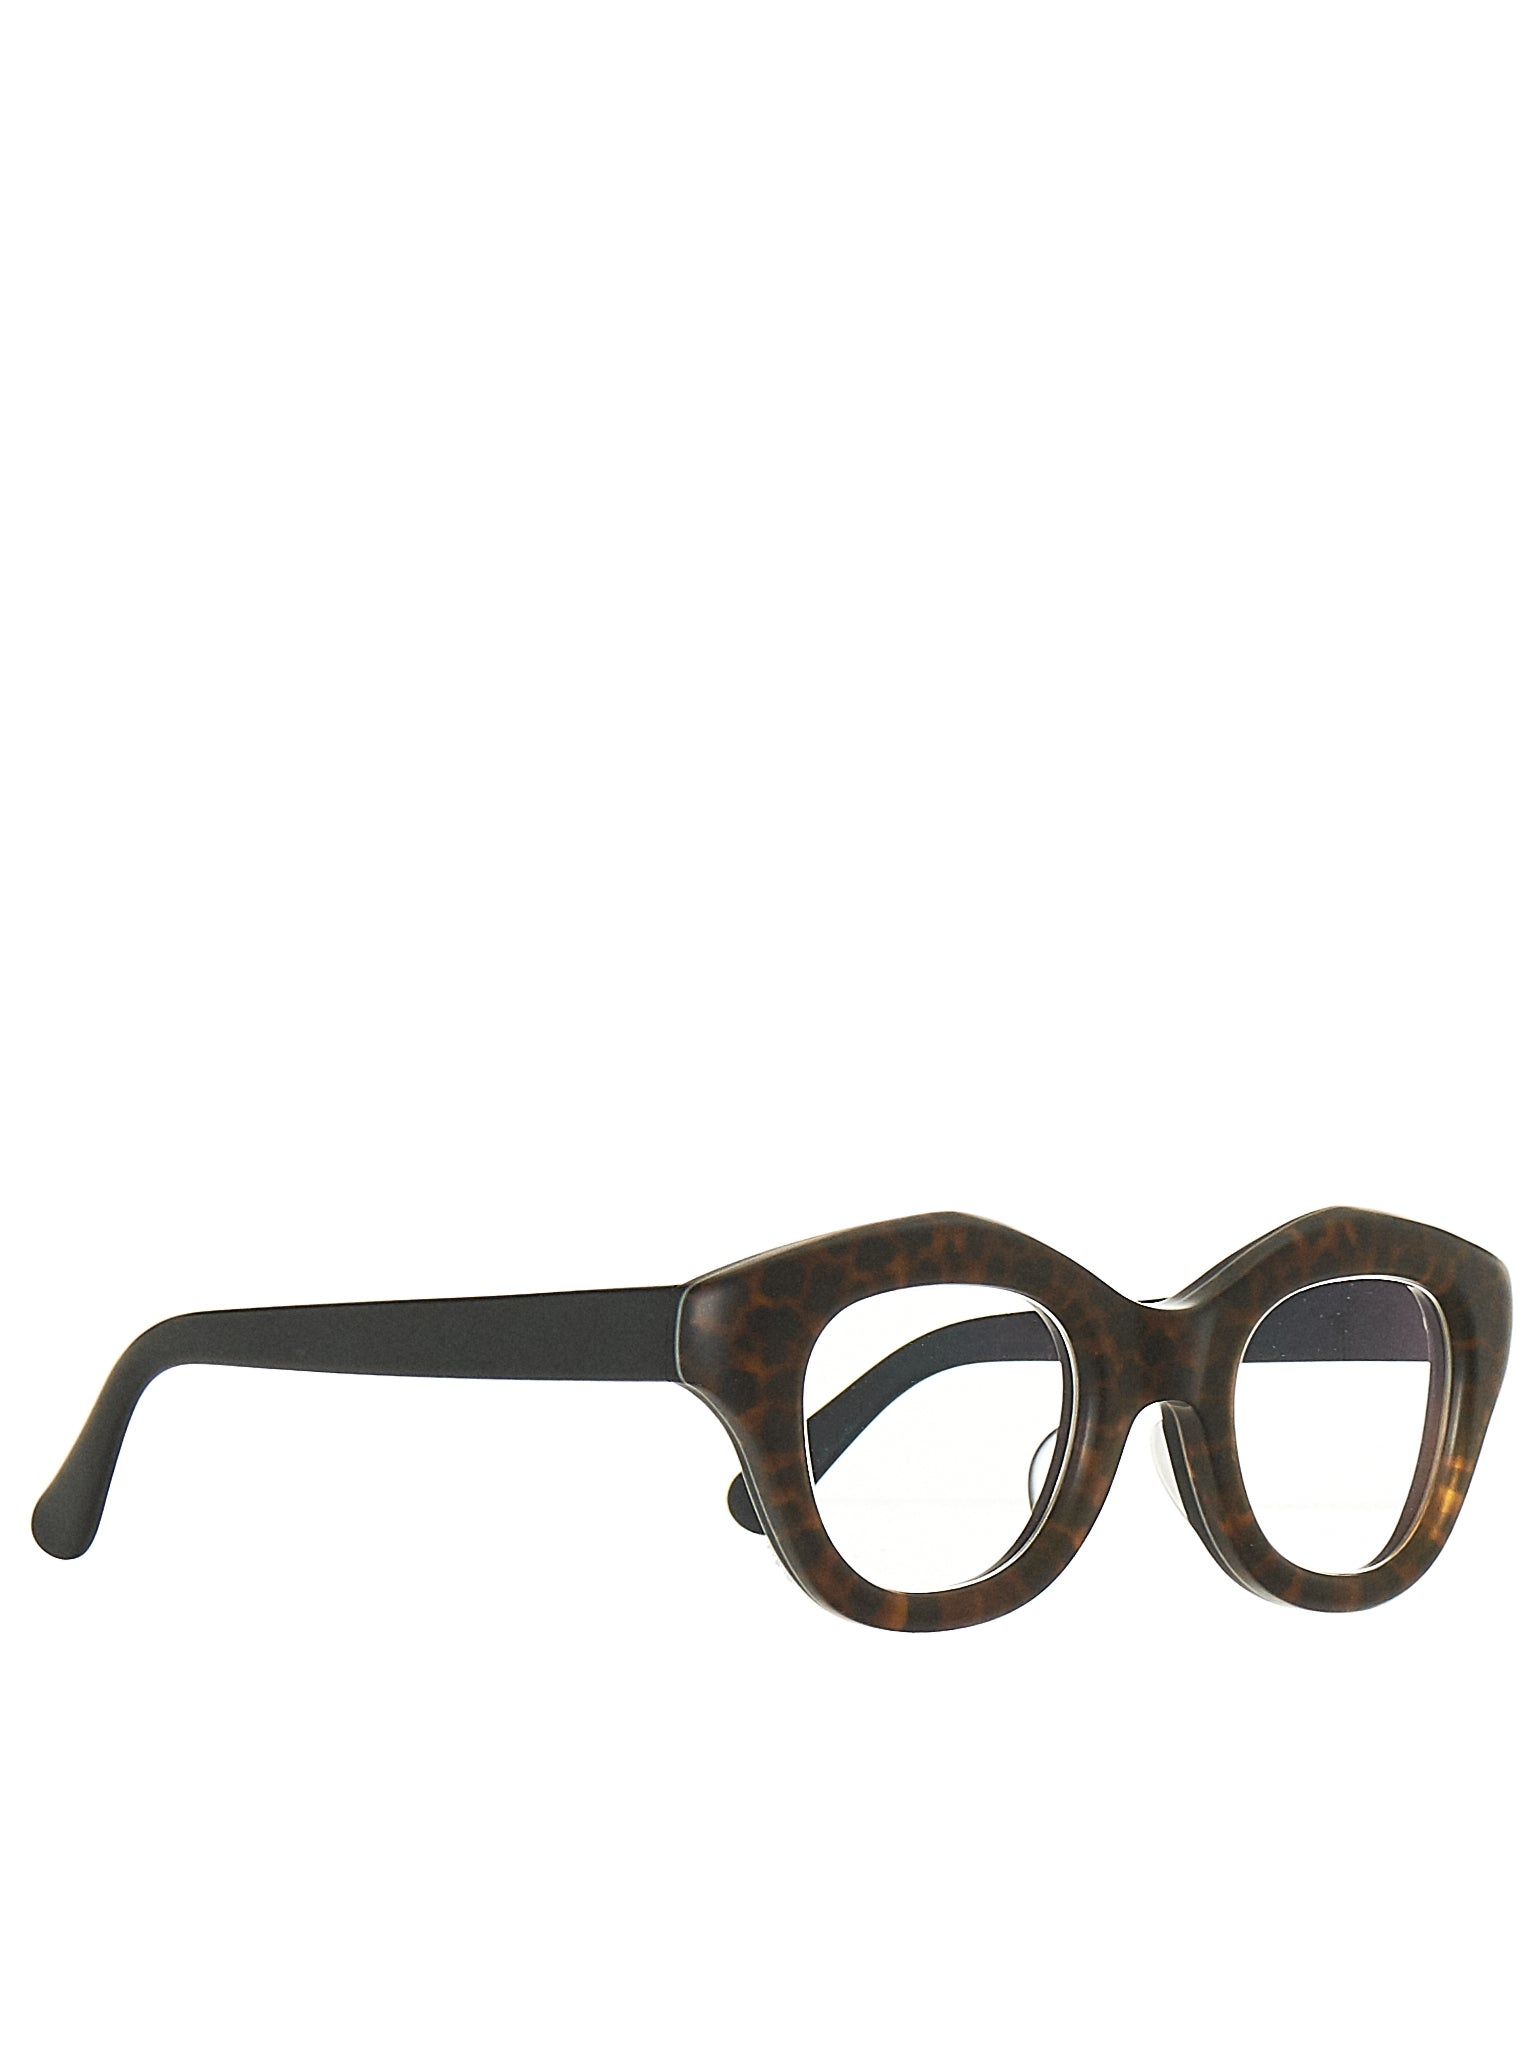 Hakusan Glasses - Hlorenzo Side